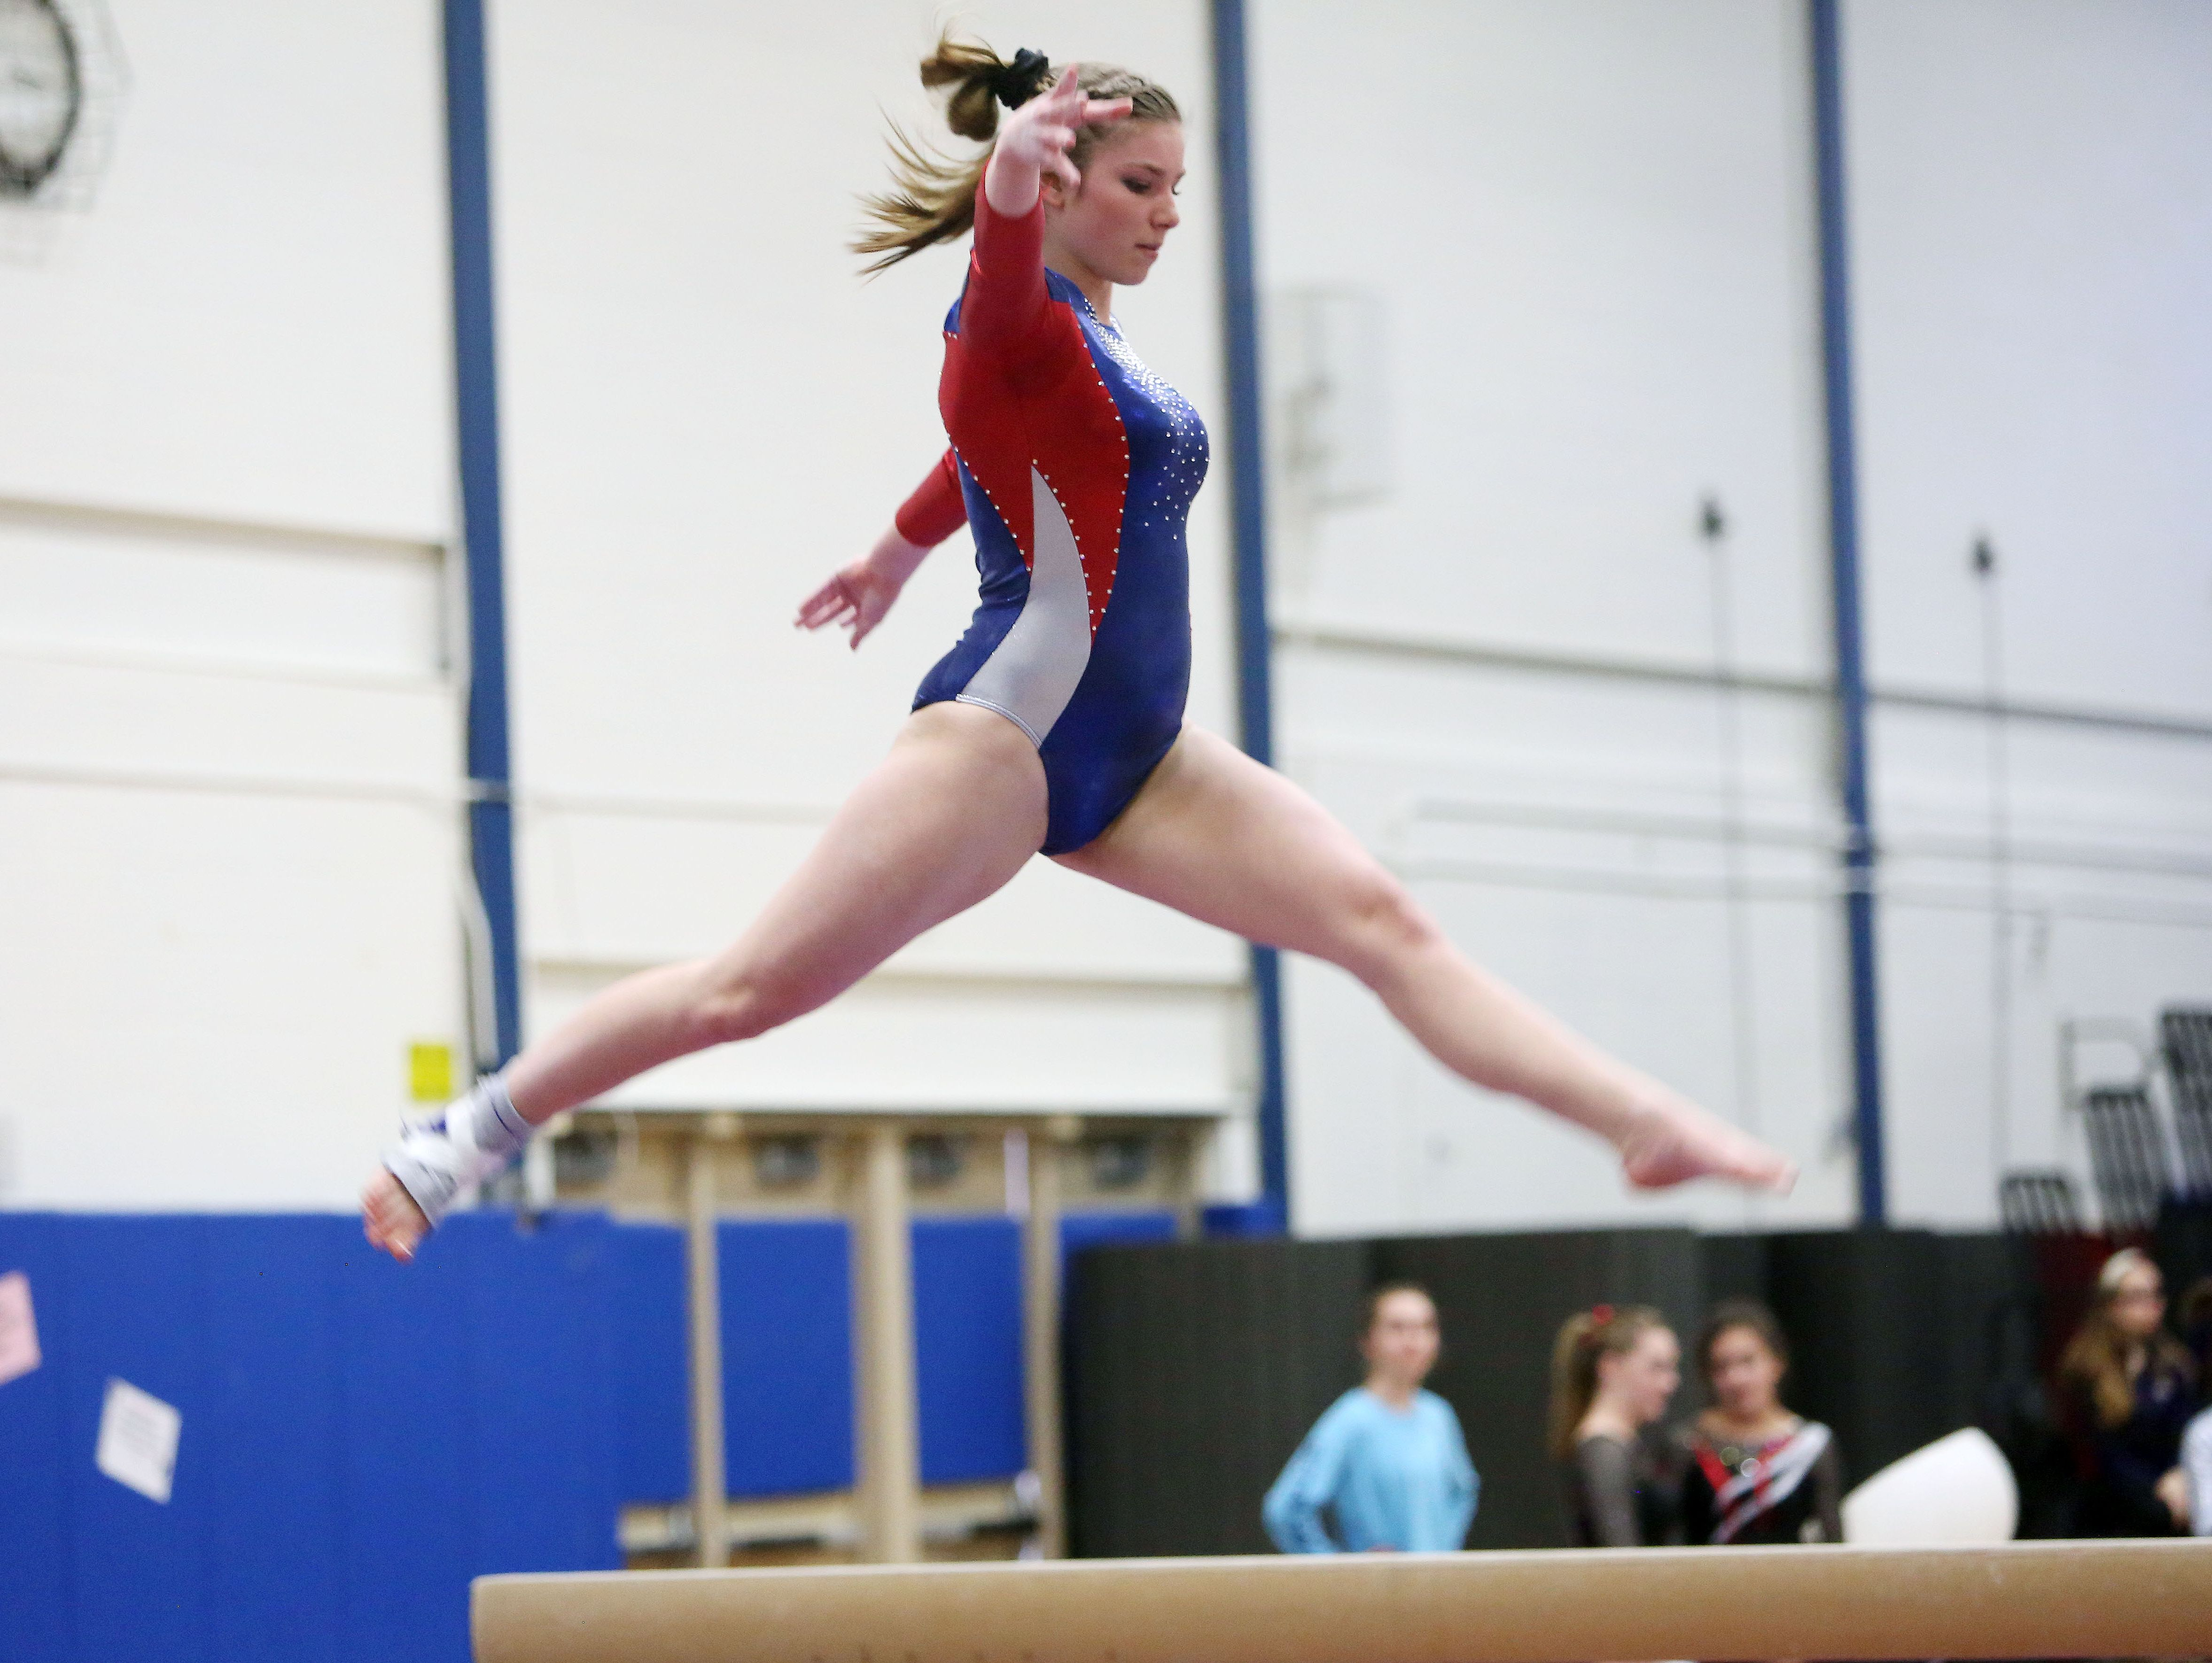 Wappingers' Olivia Frederick competes on the balance beam during the Section 1 gymnastics championship at Carmel High School on Tuesday.